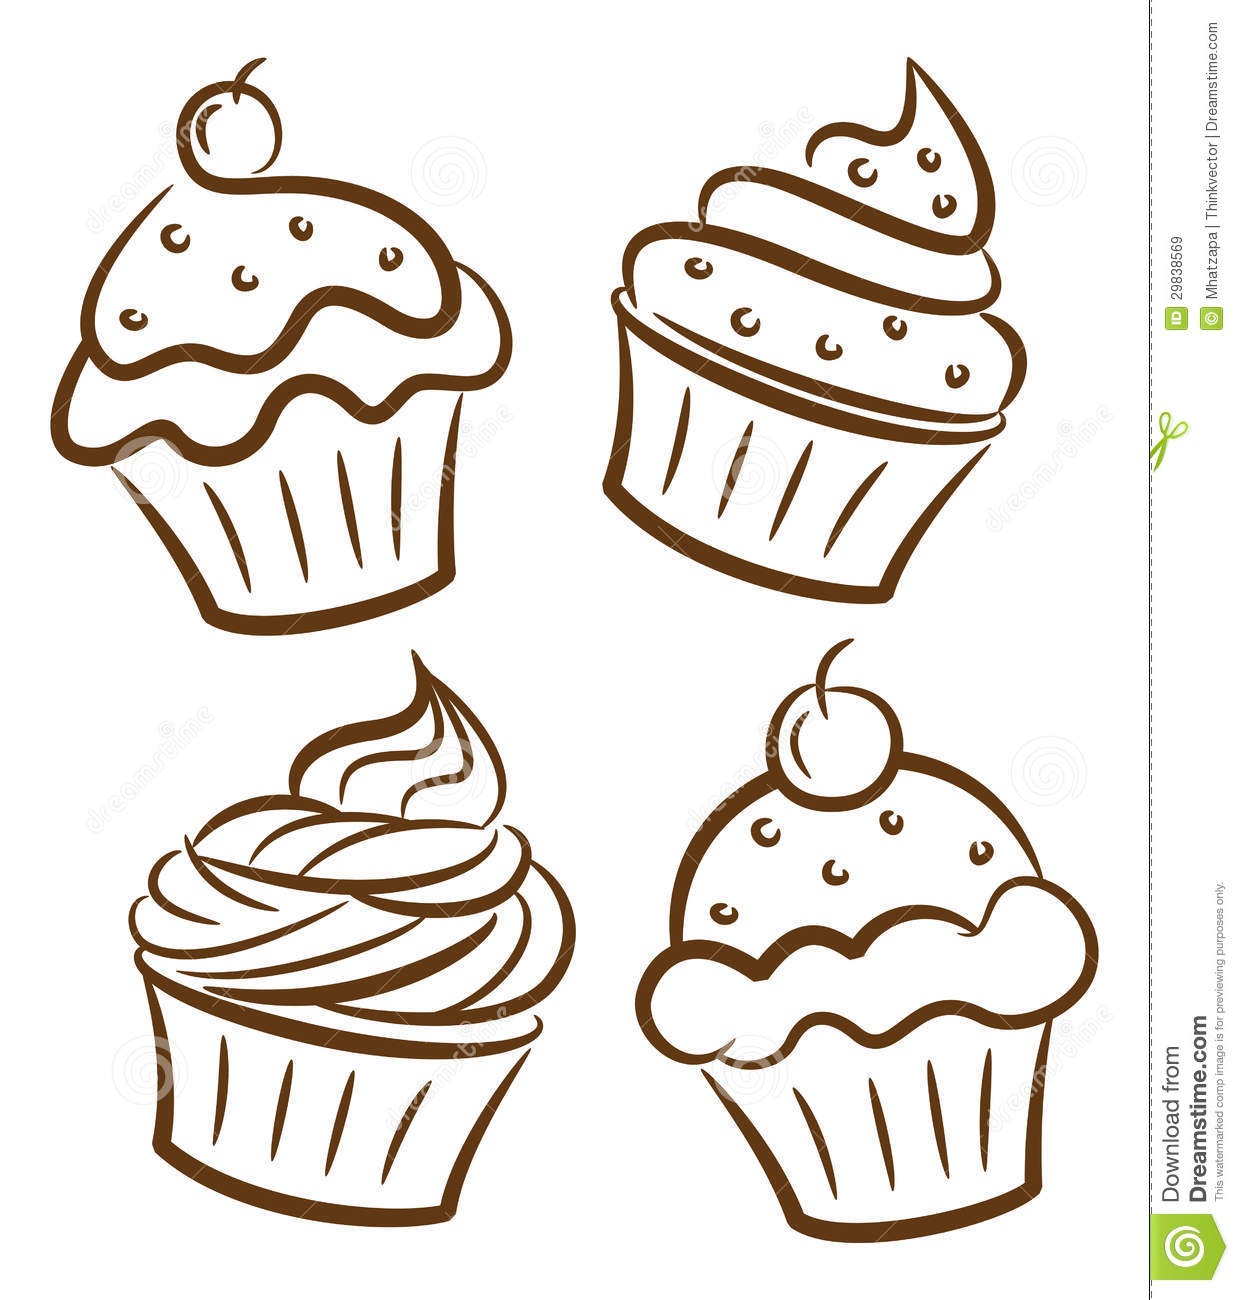 Cupcake Doodle Royalty Free Stock Images Image 29838569